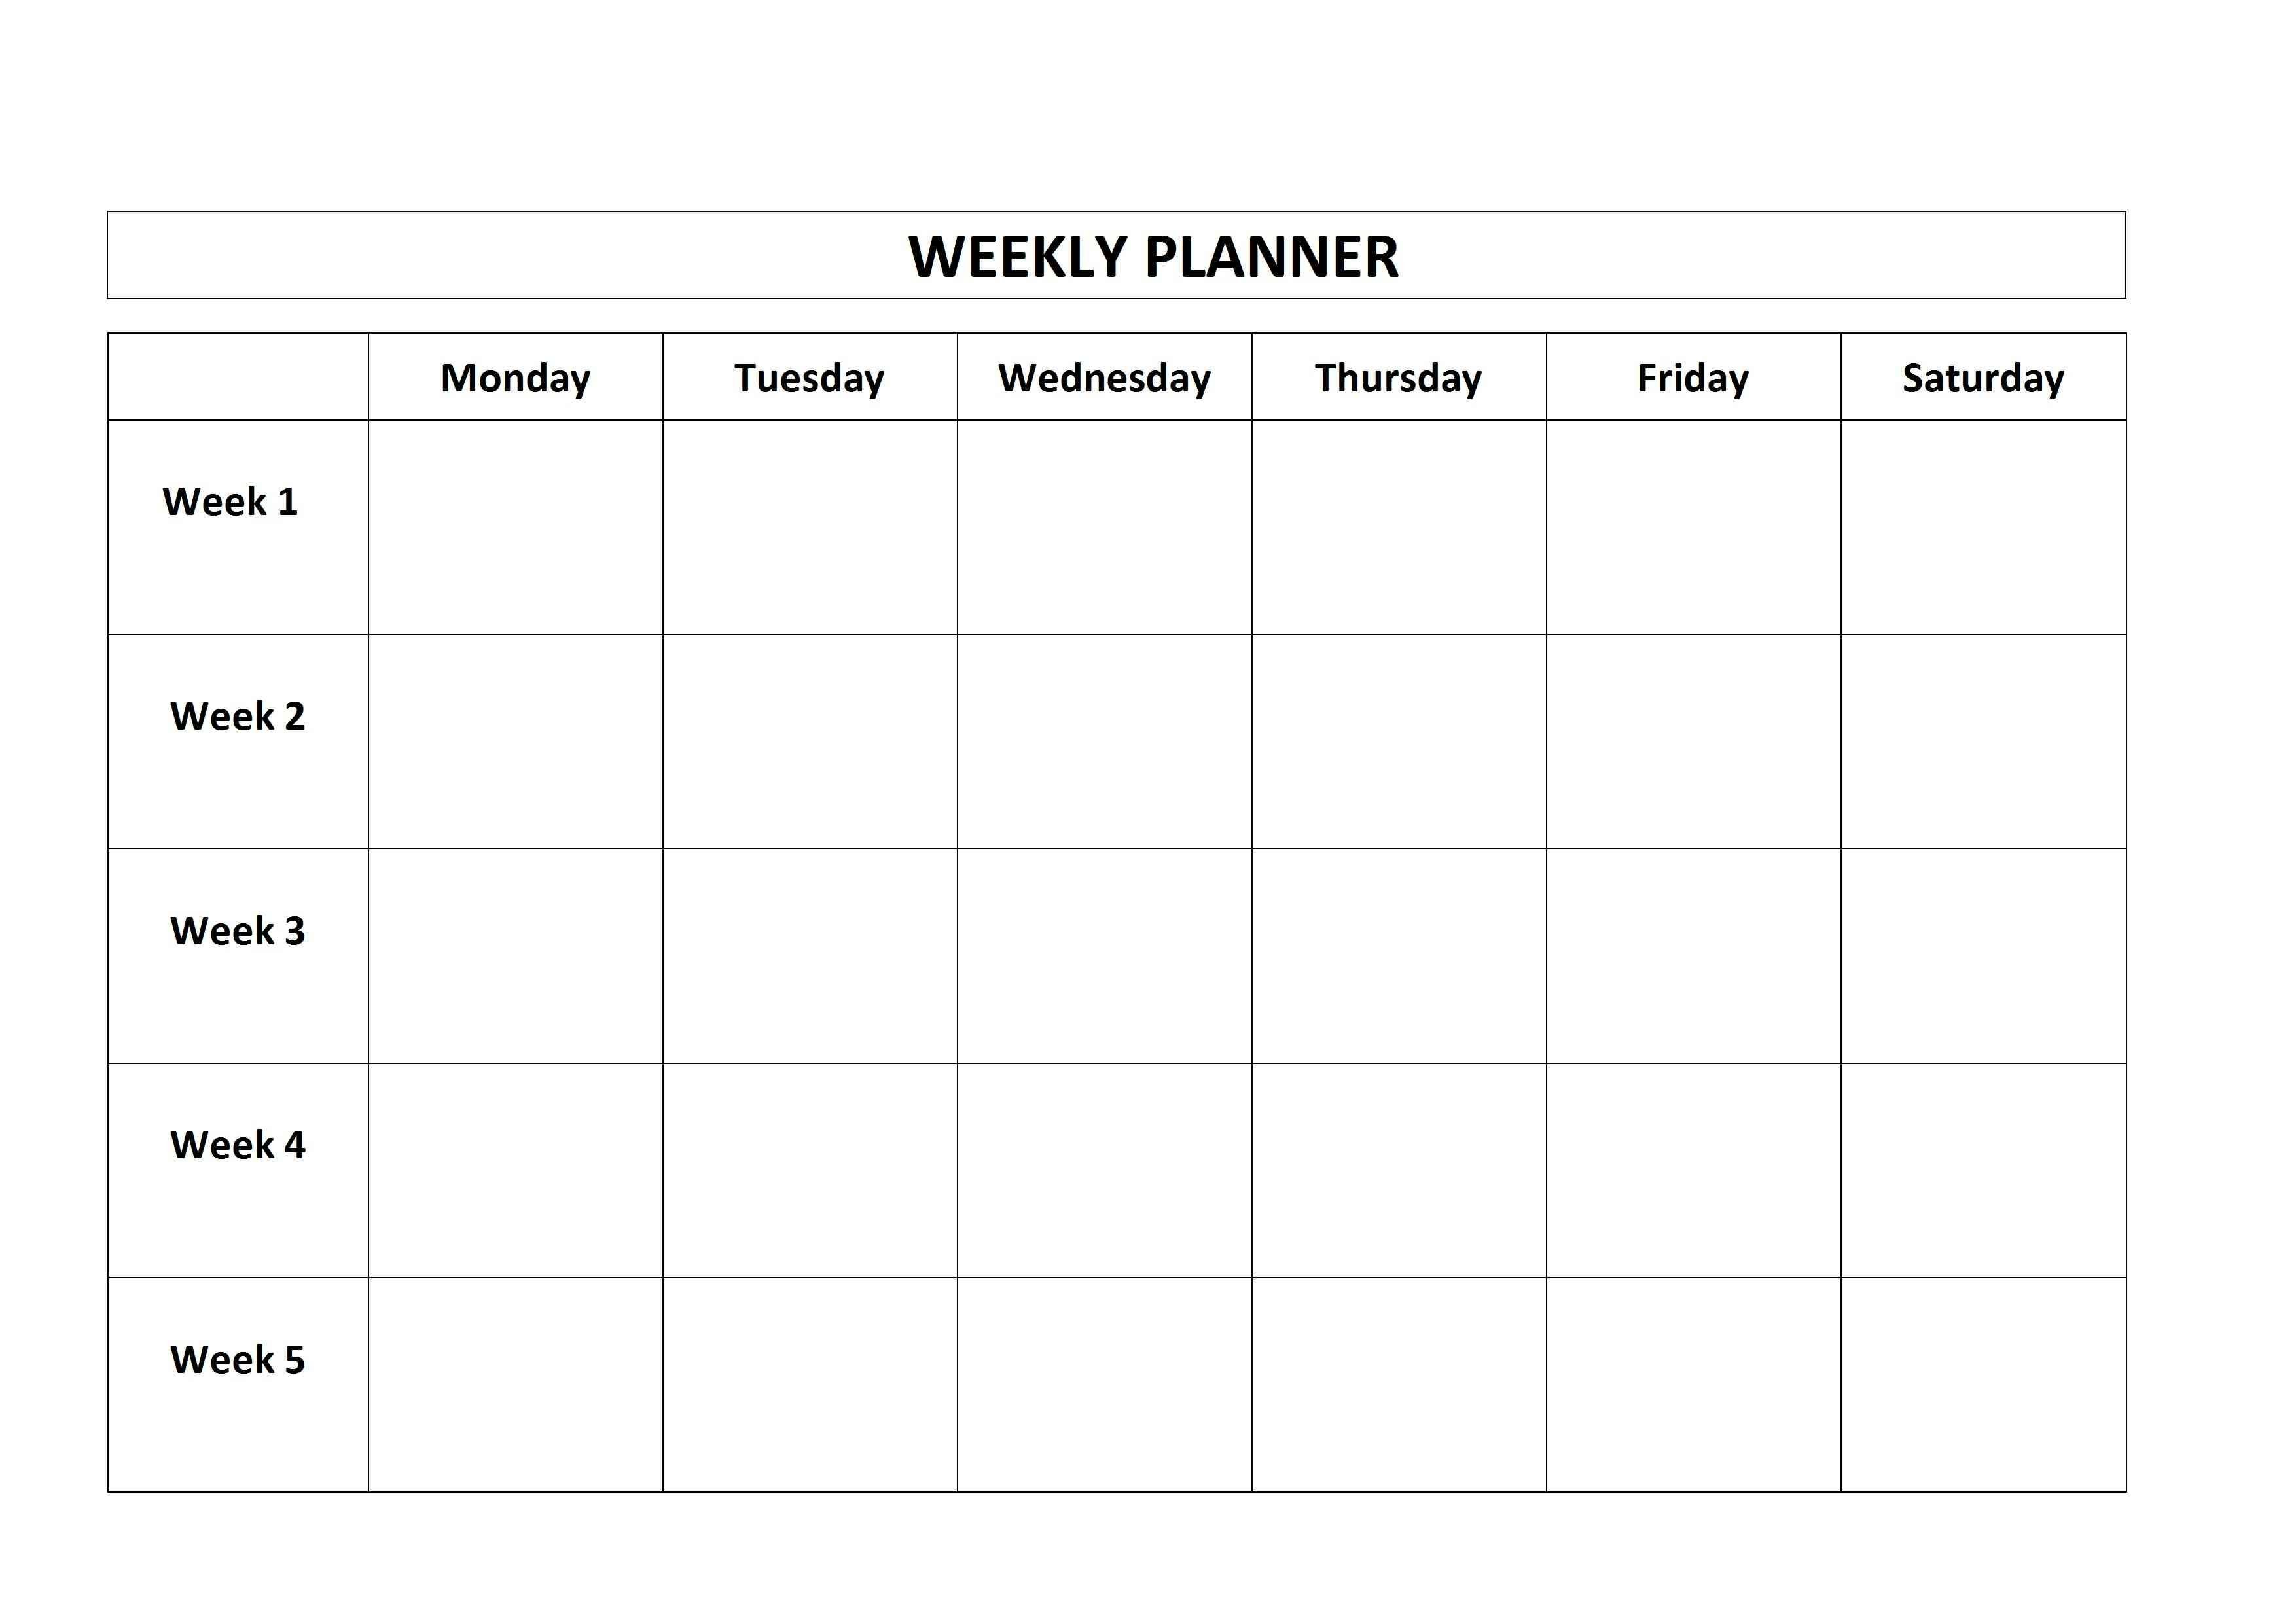 Monday To Friday Planner Template | Calendar For Planning Monday Thru Sunday Template